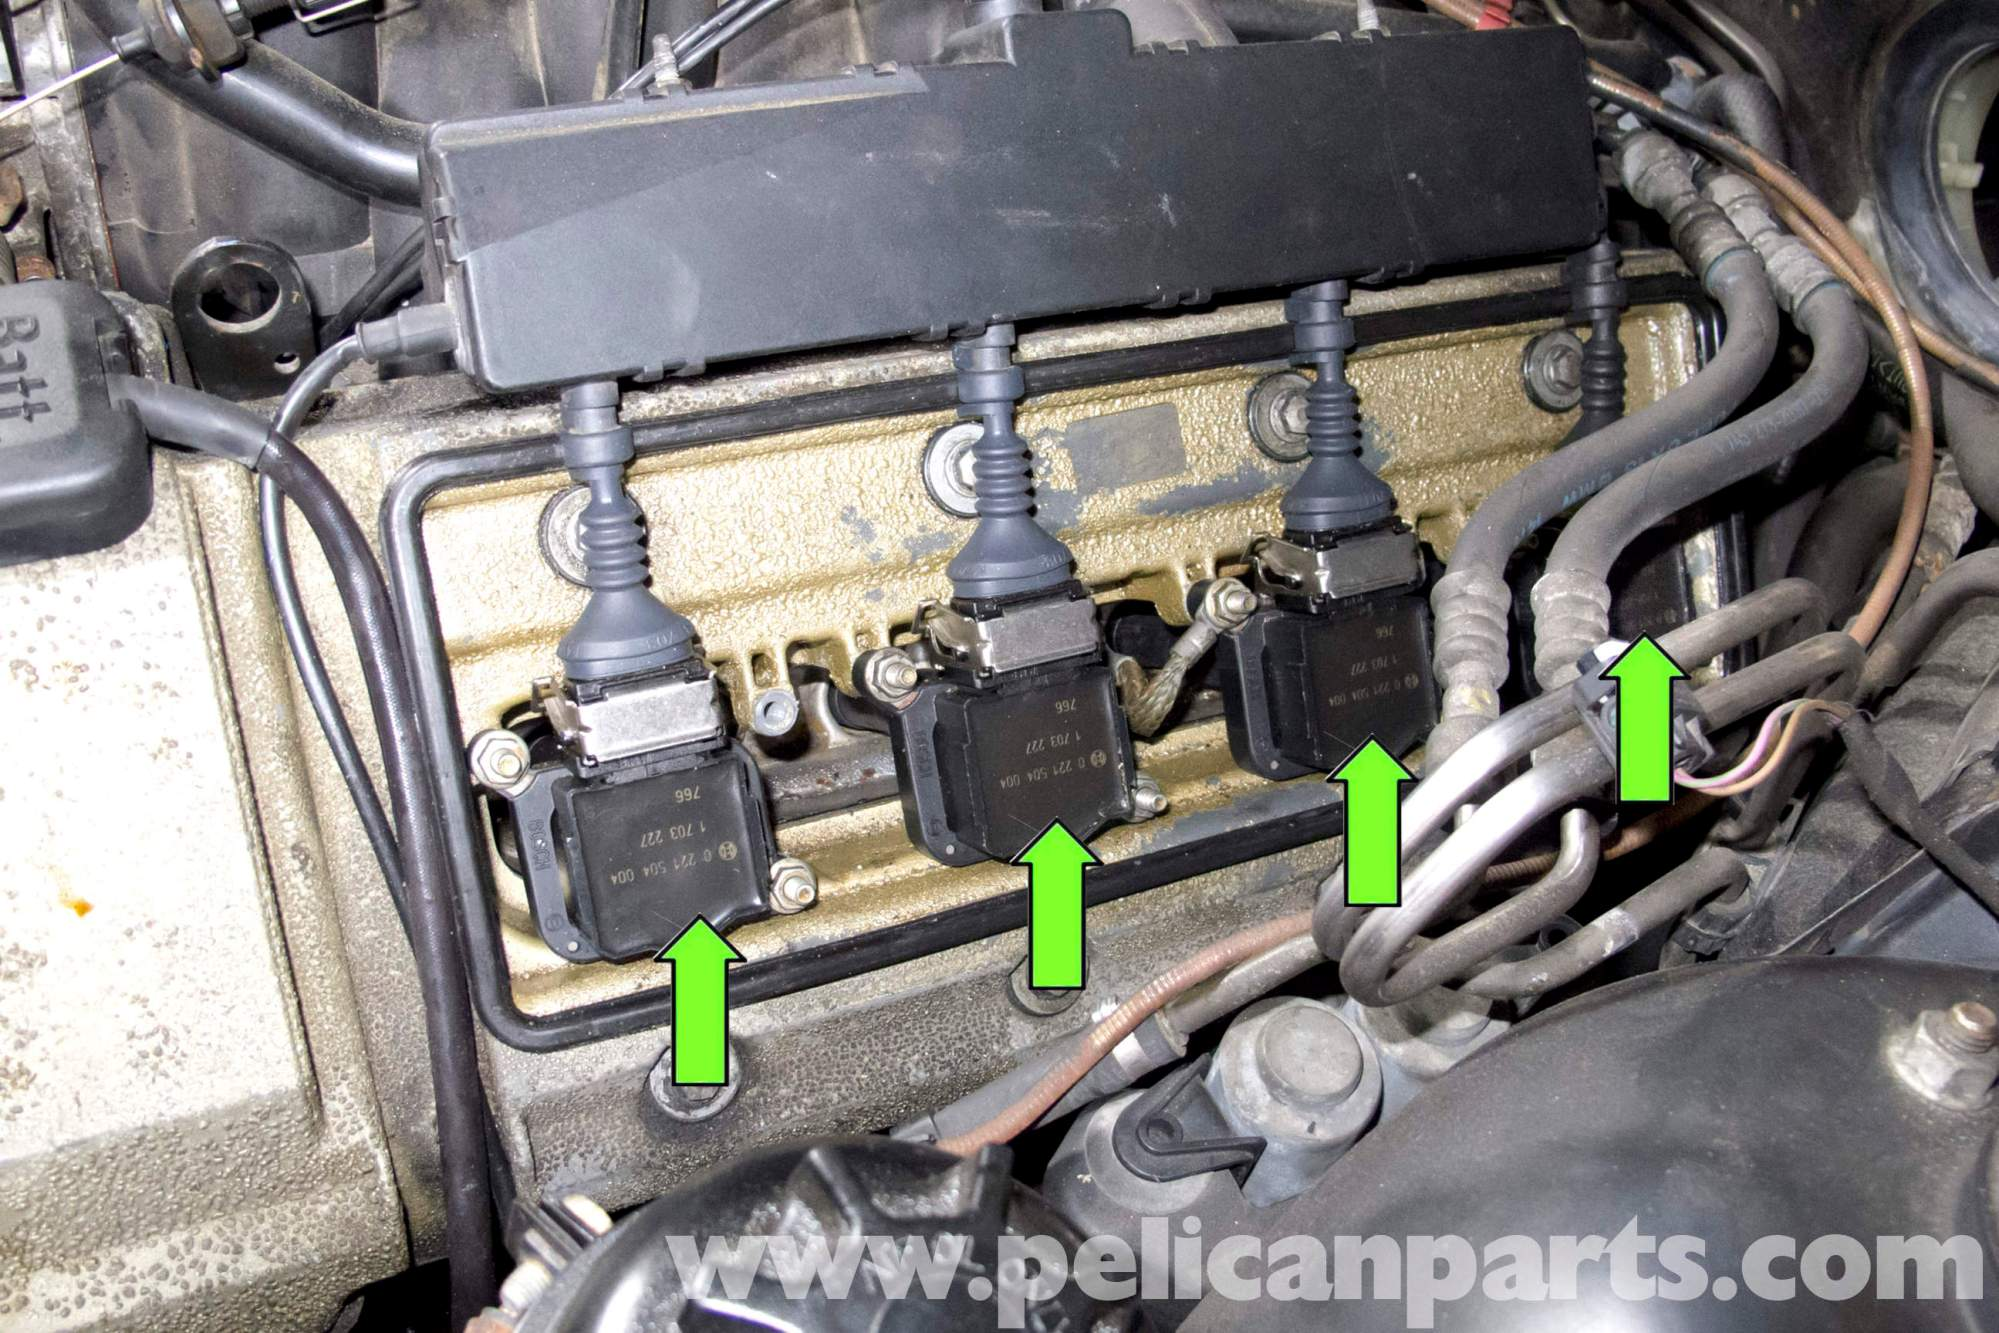 hight resolution of bmw e39 5 series spark plug coil replacement 1997 2003 525i 528i coil on plug connectors bmw coil on plug wiring